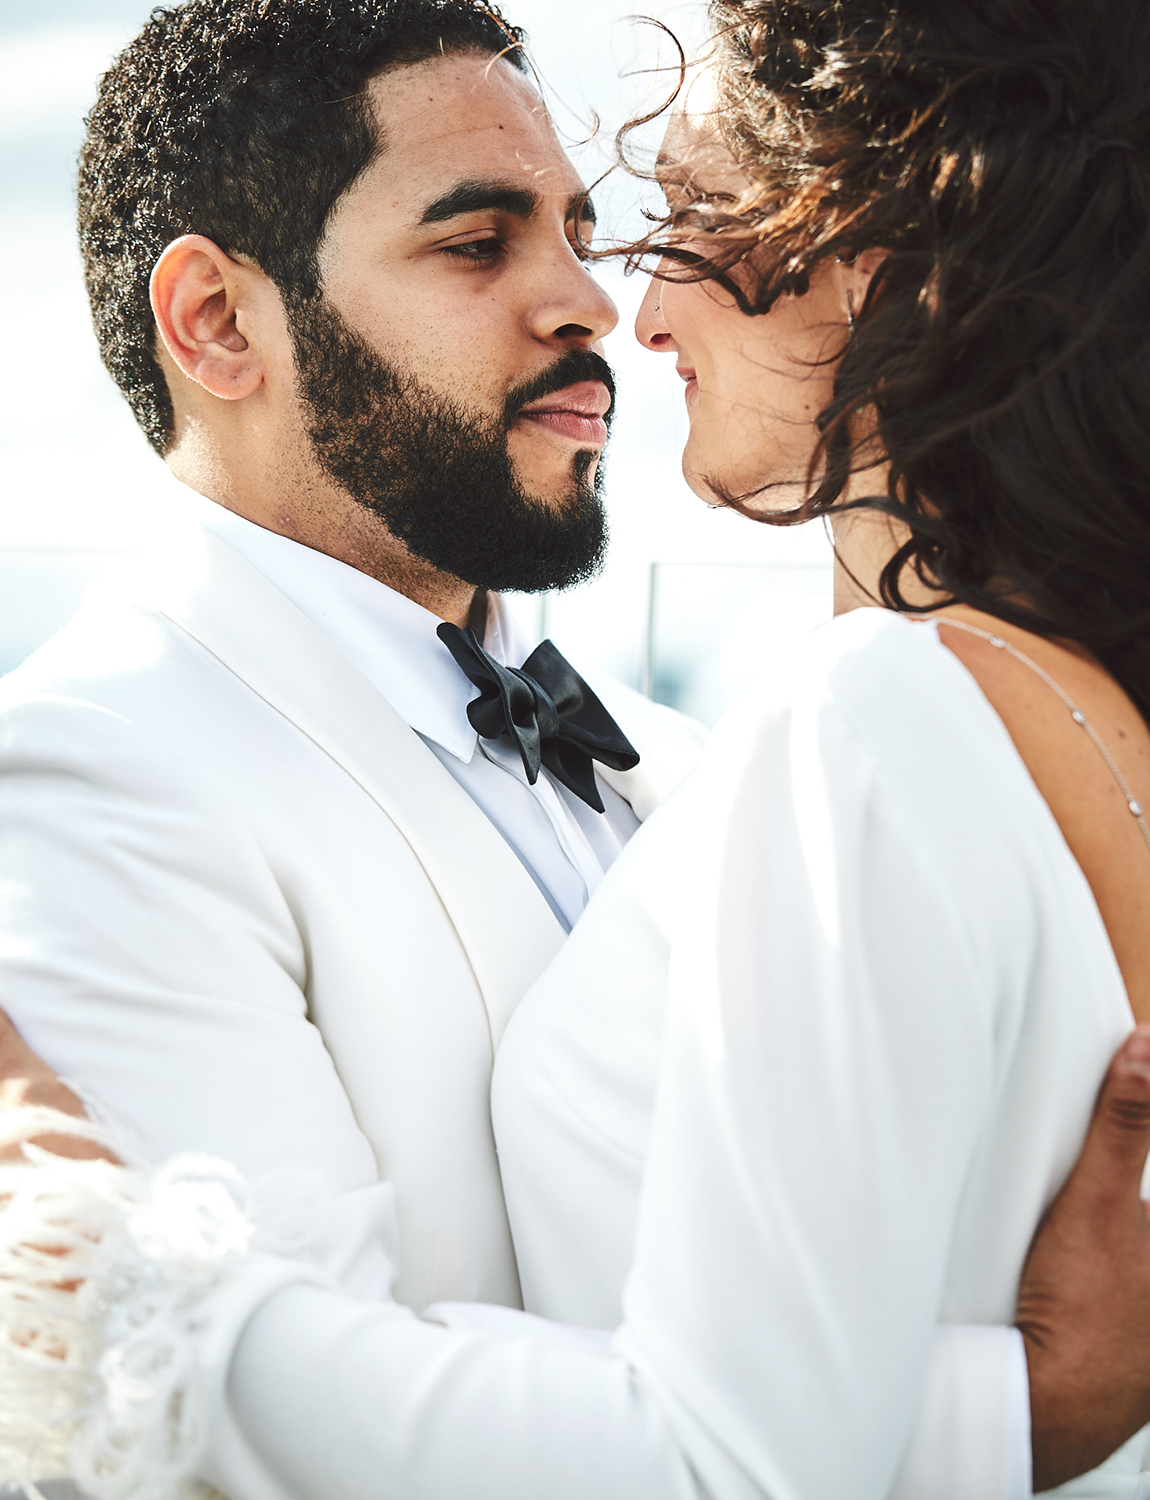 170930_WilliamValeWeddingPhotography_BrooklynWeddingPhotographer_By_BriJohnsonWeddings_0087.jpg